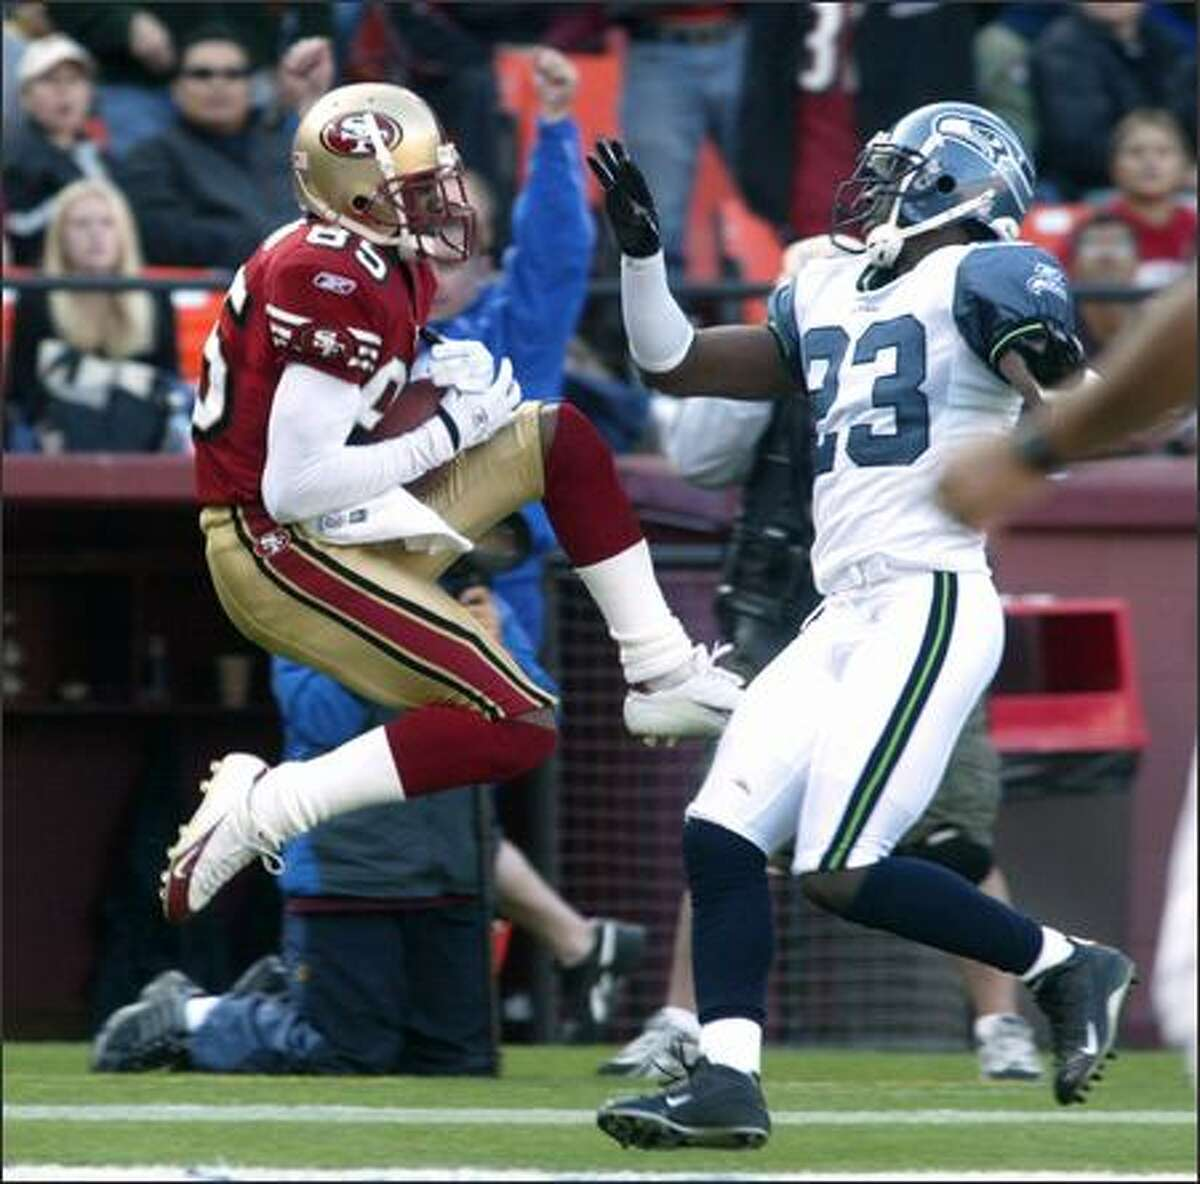 Seahawks cornerback Marcus Trufant is unable to stop 49ers receiver Brandon Lloyd from pulling in a touchdown reception in the third quarter.